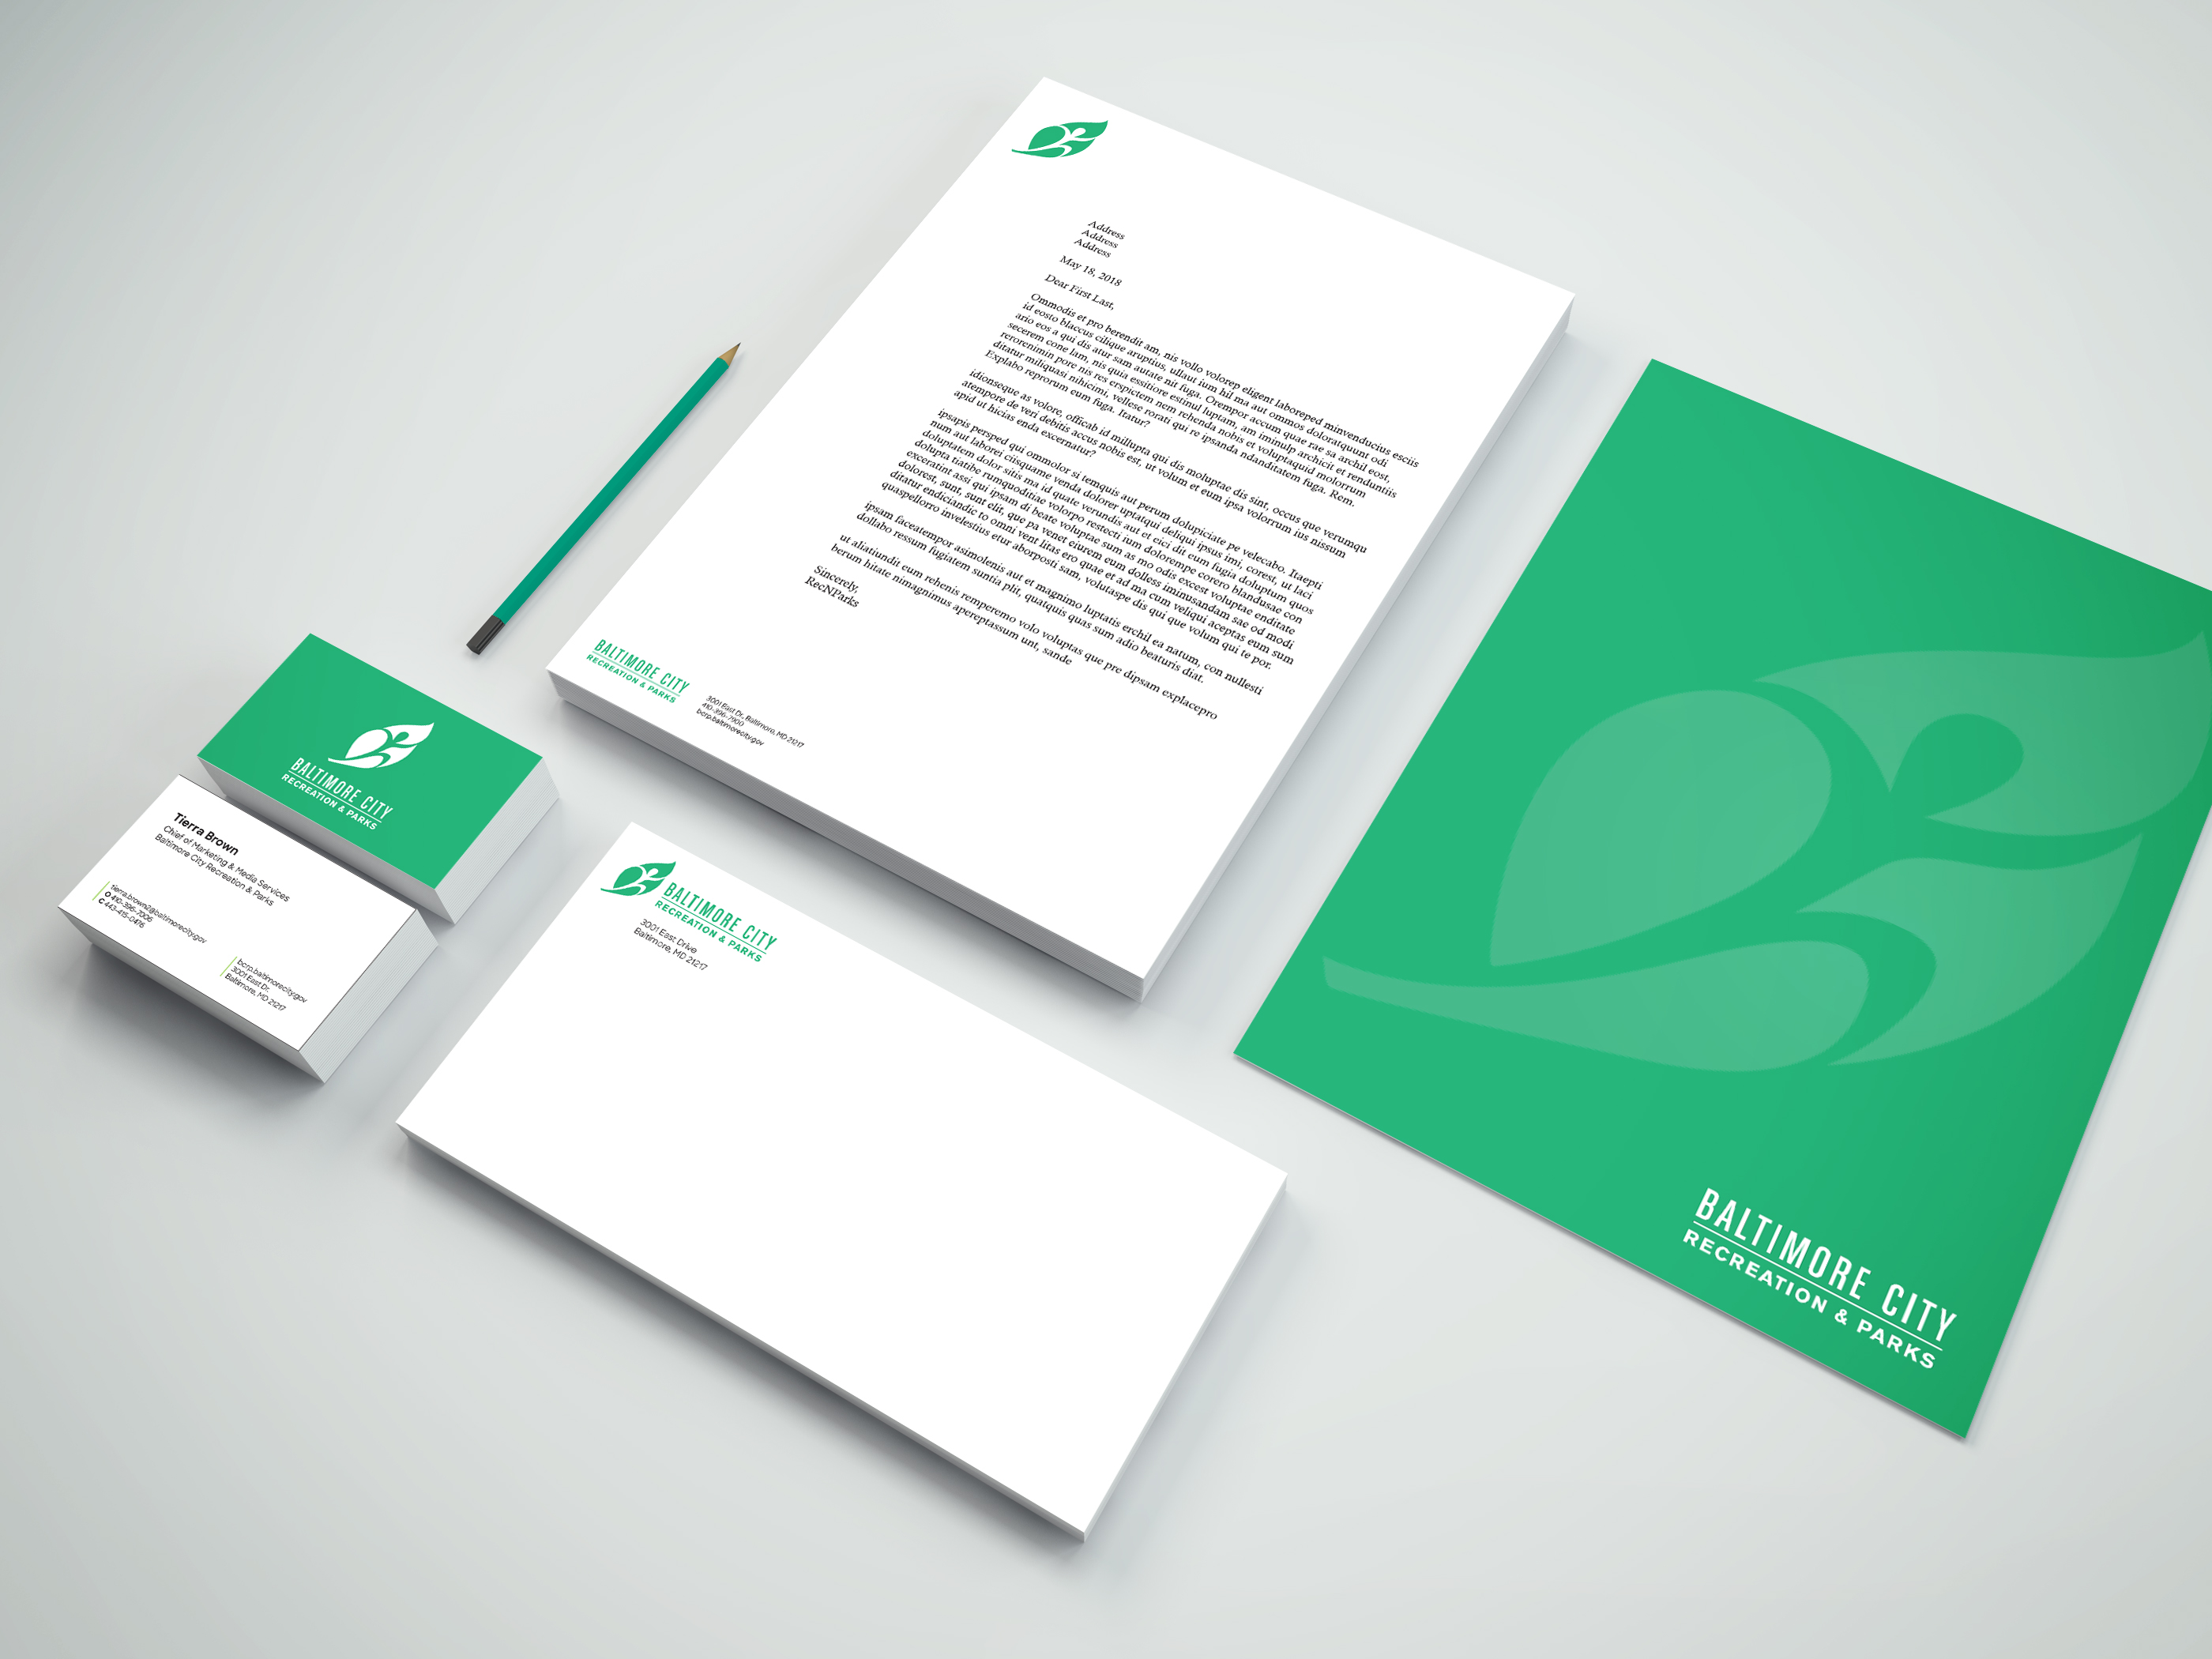 branded documents